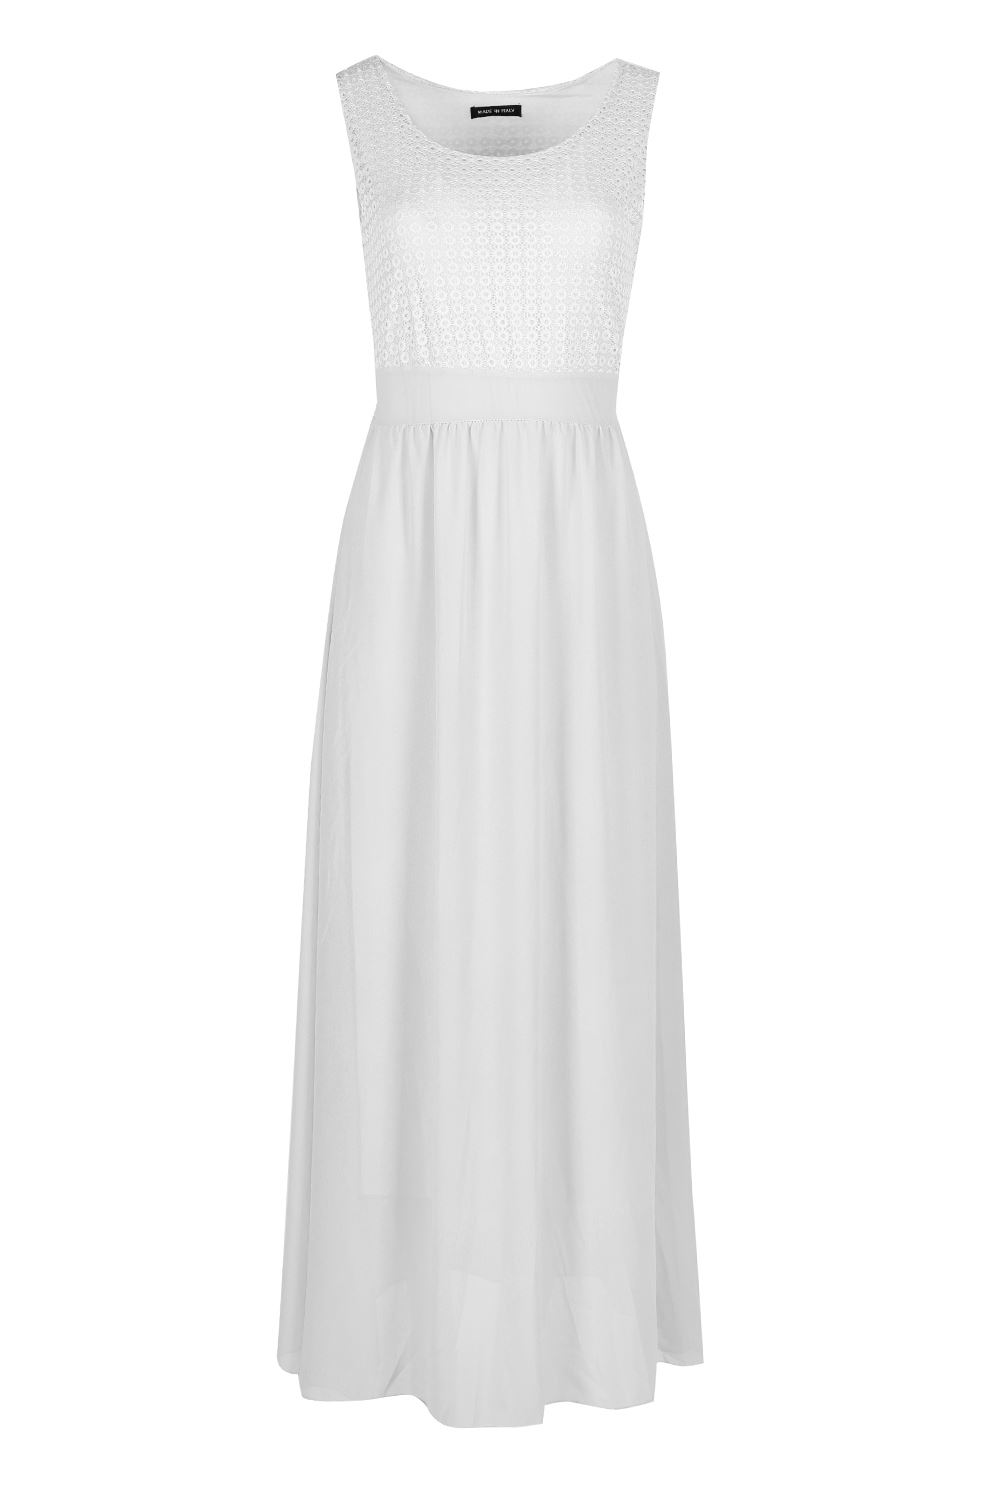 Ladies Double Layer Maxi Dress Womens Sleeveless Ring Lace Belt Tie Knot Back